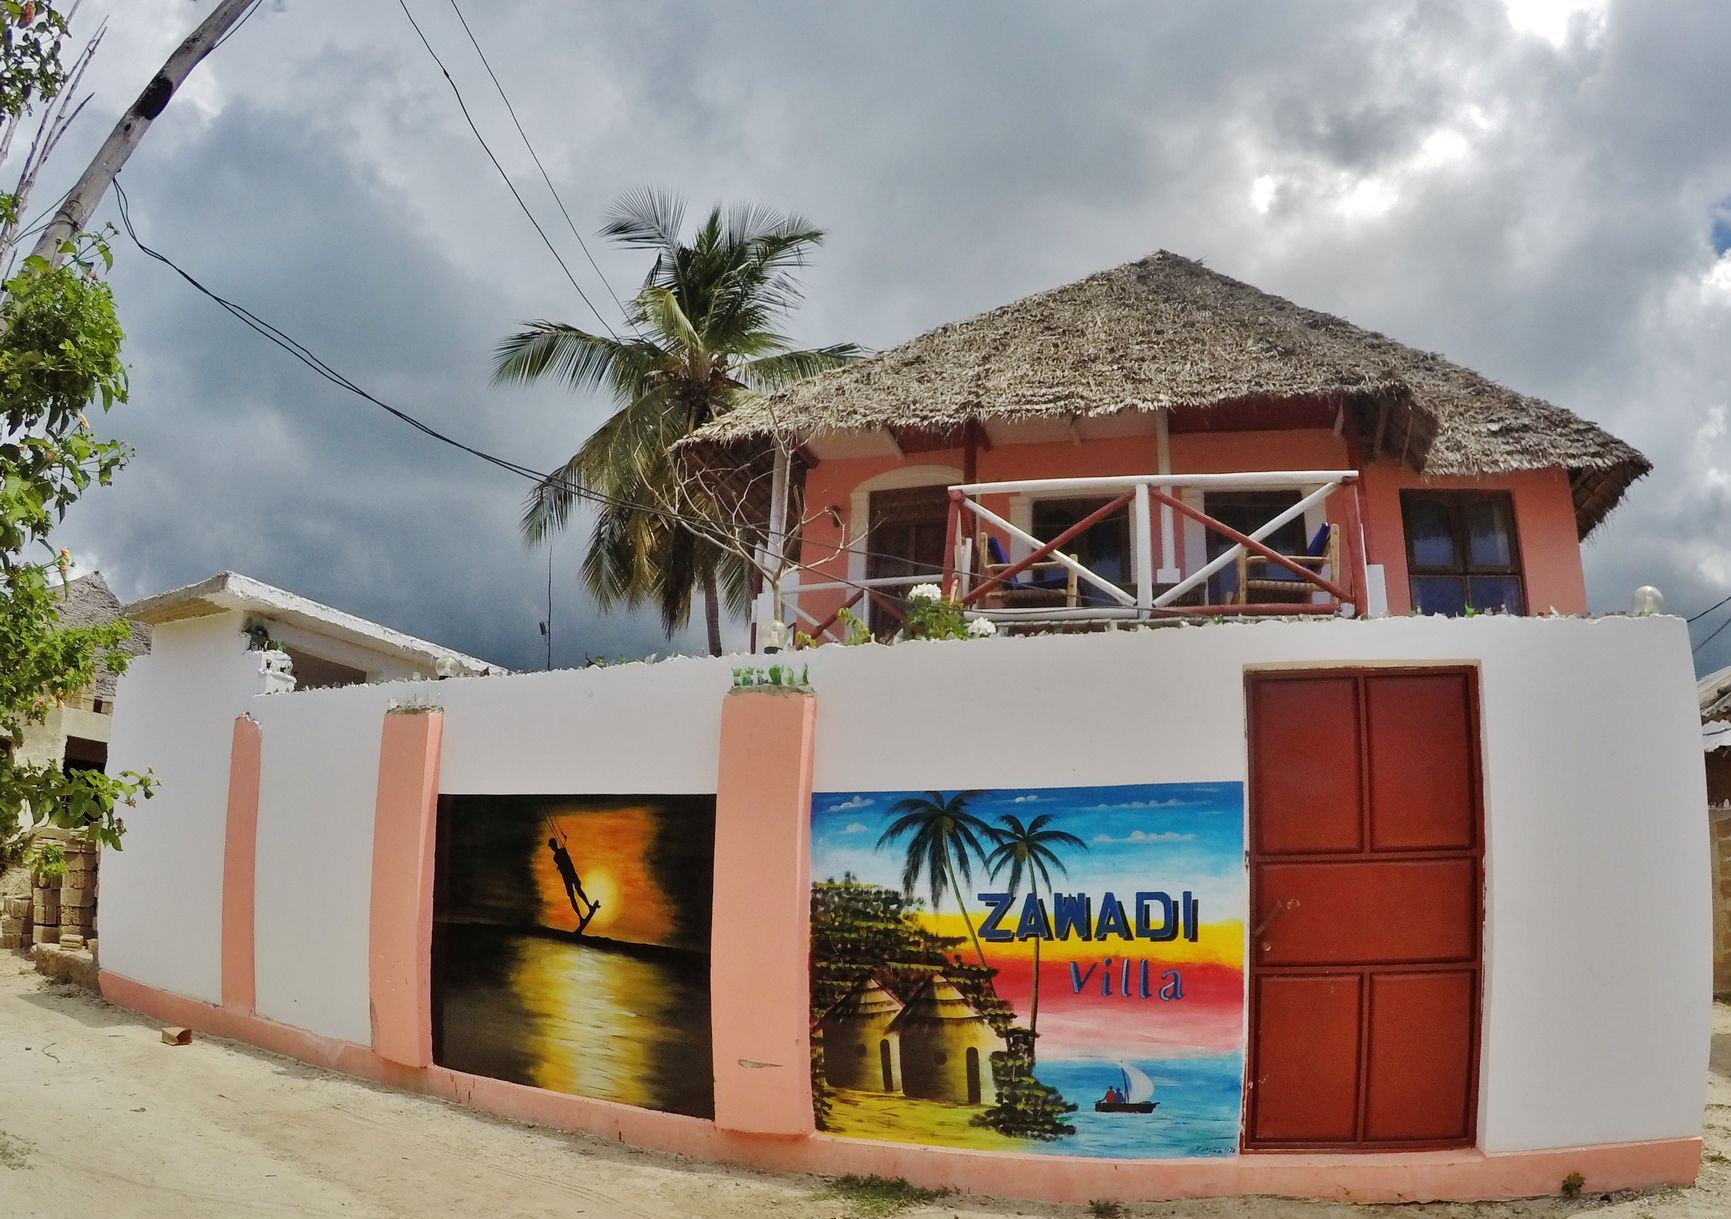 Zawadyv Villa in Paje, Zanzibar has two big spacious living rooms, balcony and a cozy garden.